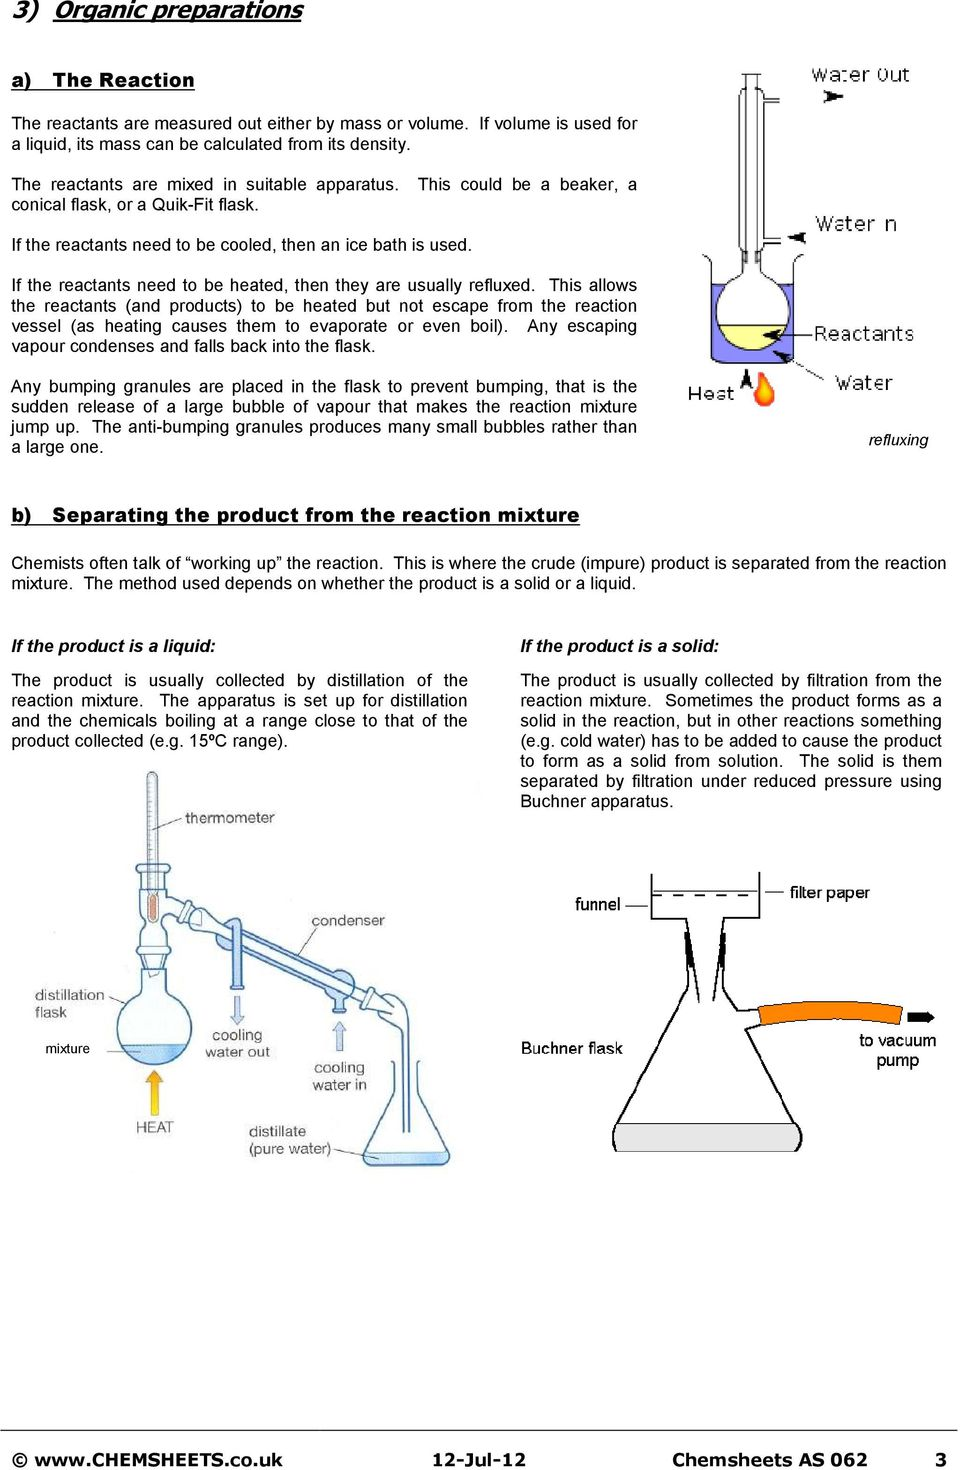 If the reactants need to be heated, then they are usually refluxed.